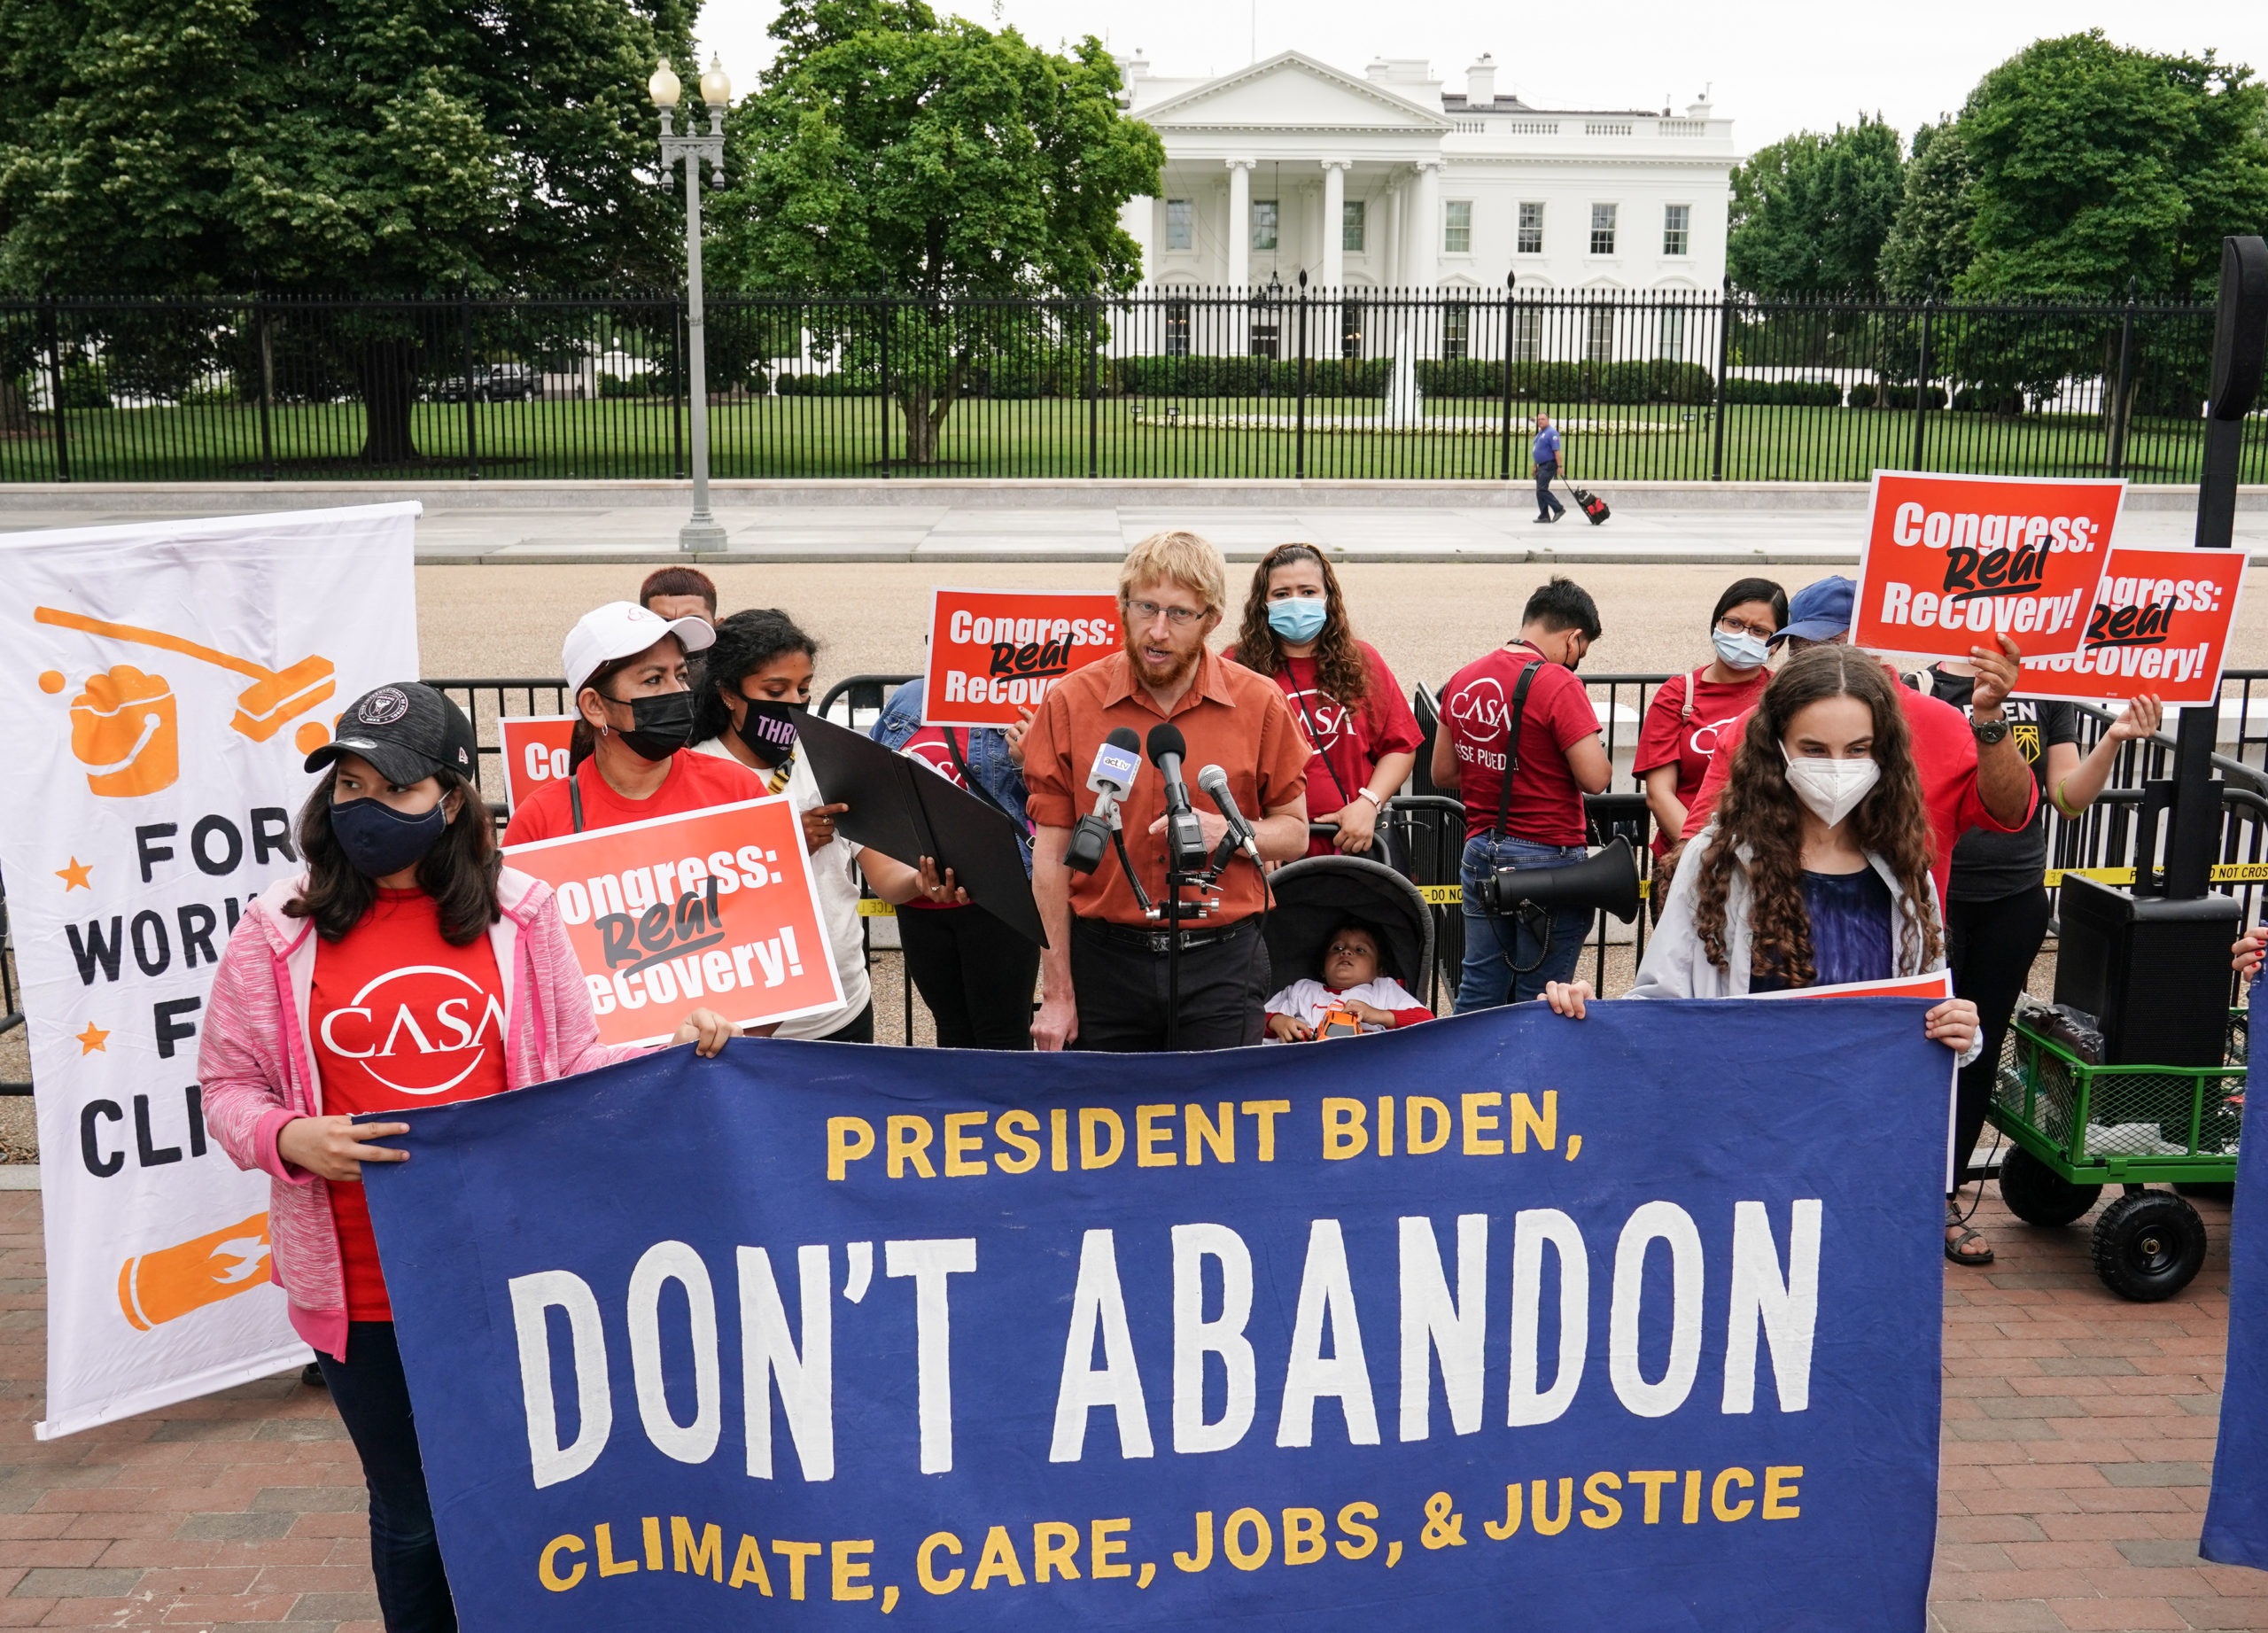 Activist Ben Beachy speaks during a May 24 demonstration calling on President Joe Biden not to compromise on his election promises. (Jemal Countess/Getty Images for Green New Deal Network)